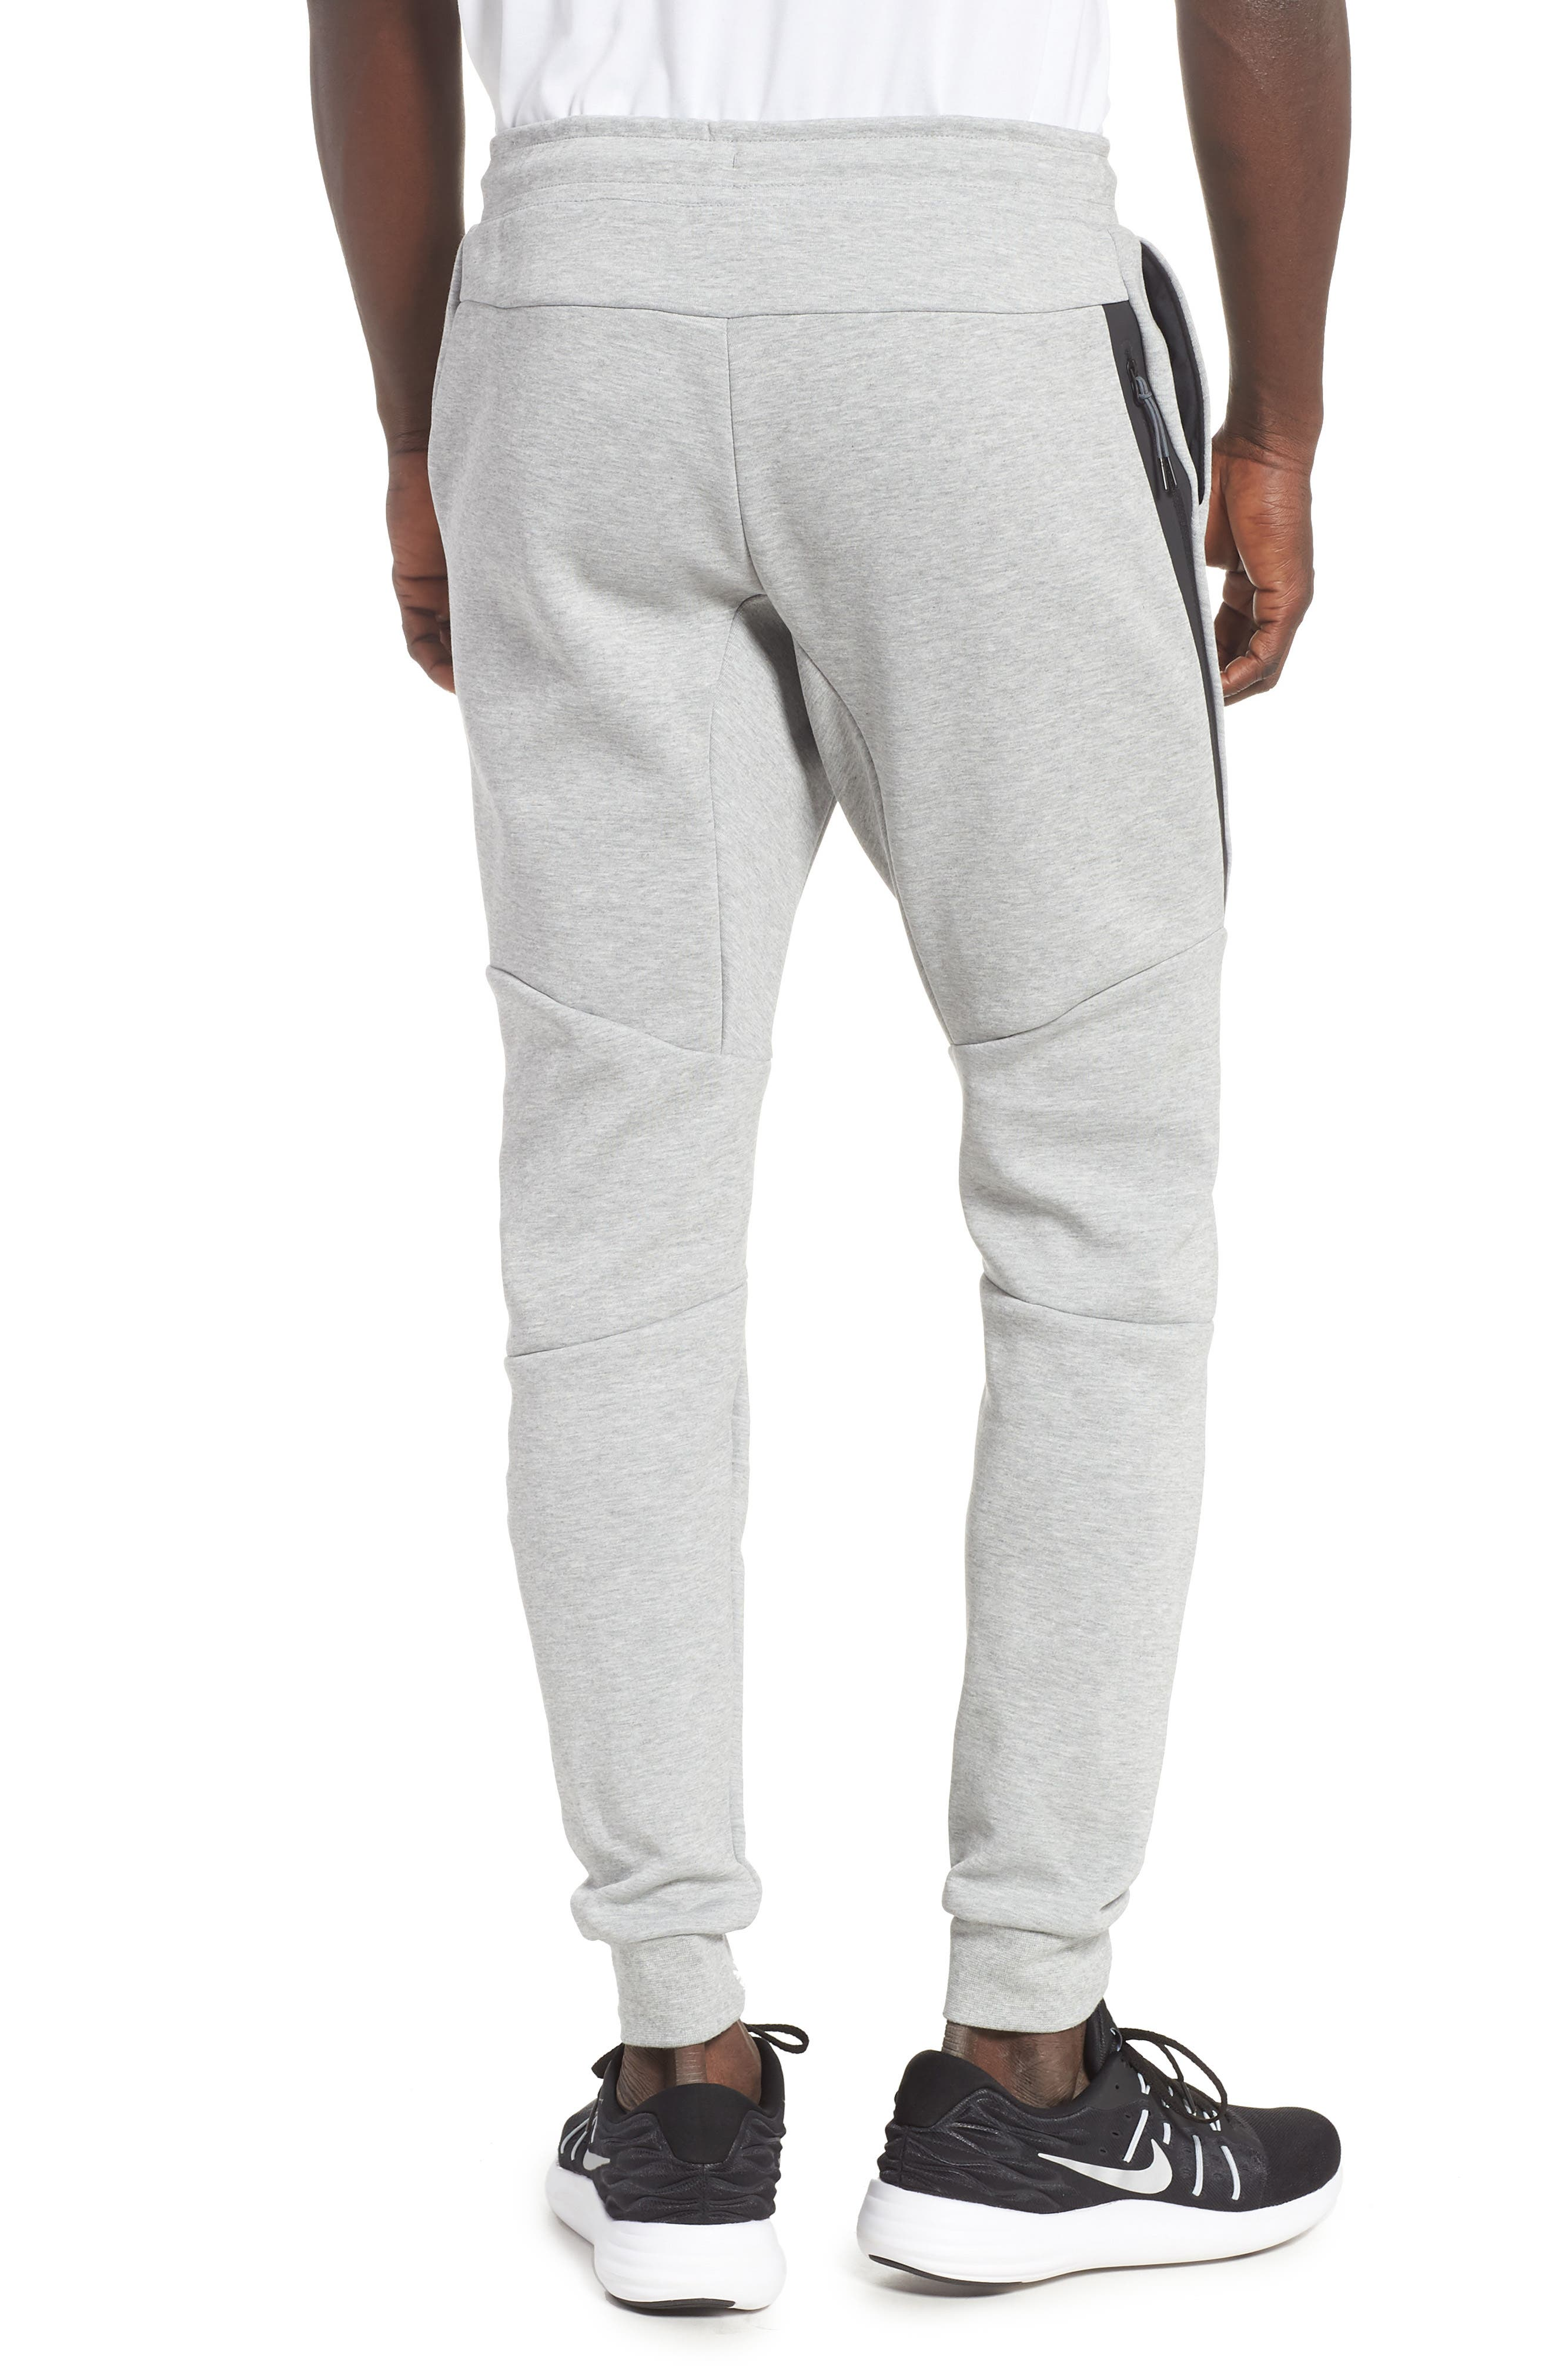 NIKE, Tech Fleece Jogger Pants, Alternate thumbnail 2, color, DARK GREY HEATHER/ BLACK